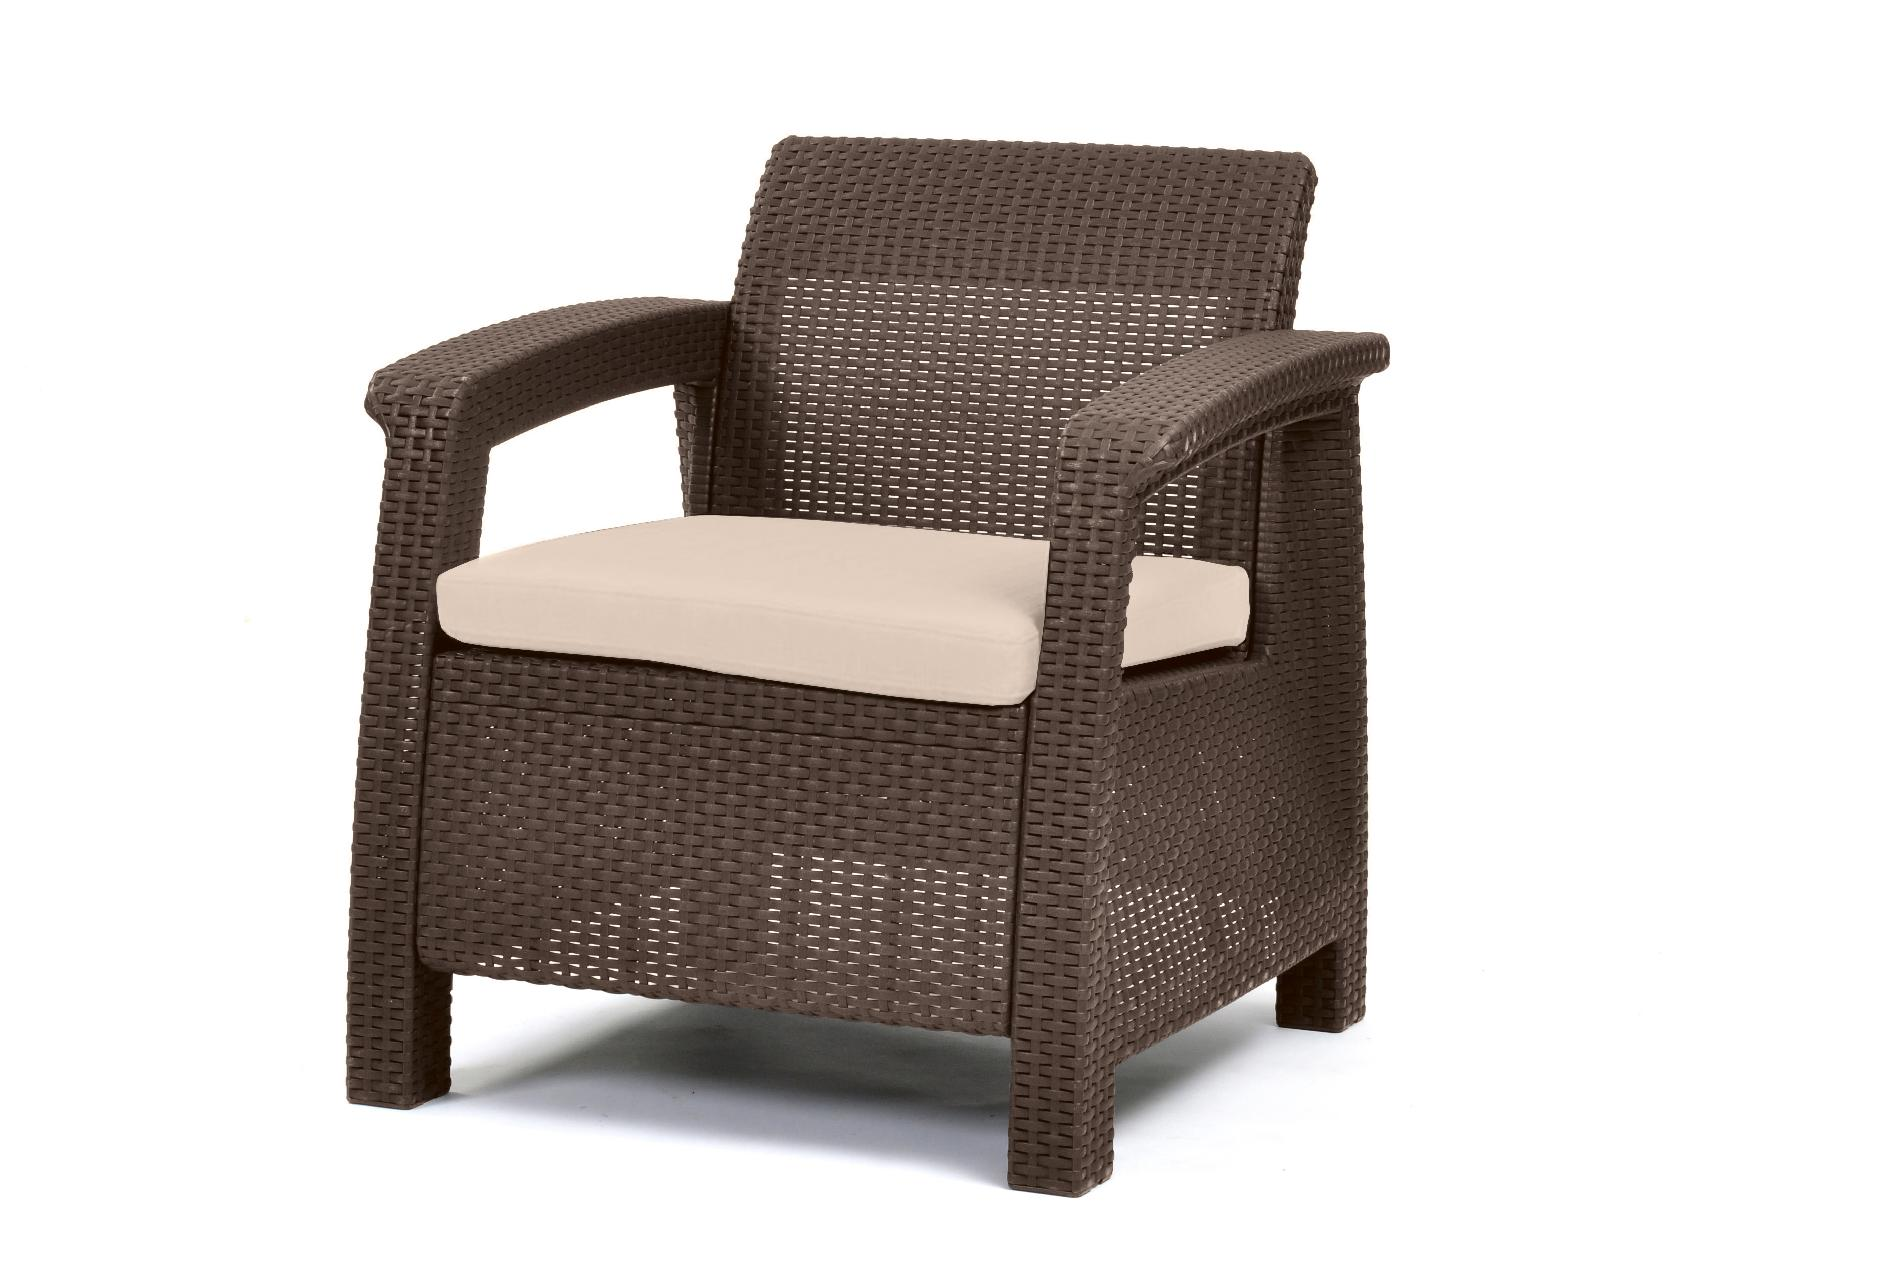 Keter Corfu Armchair All Weather Outdoor Patio Furniture